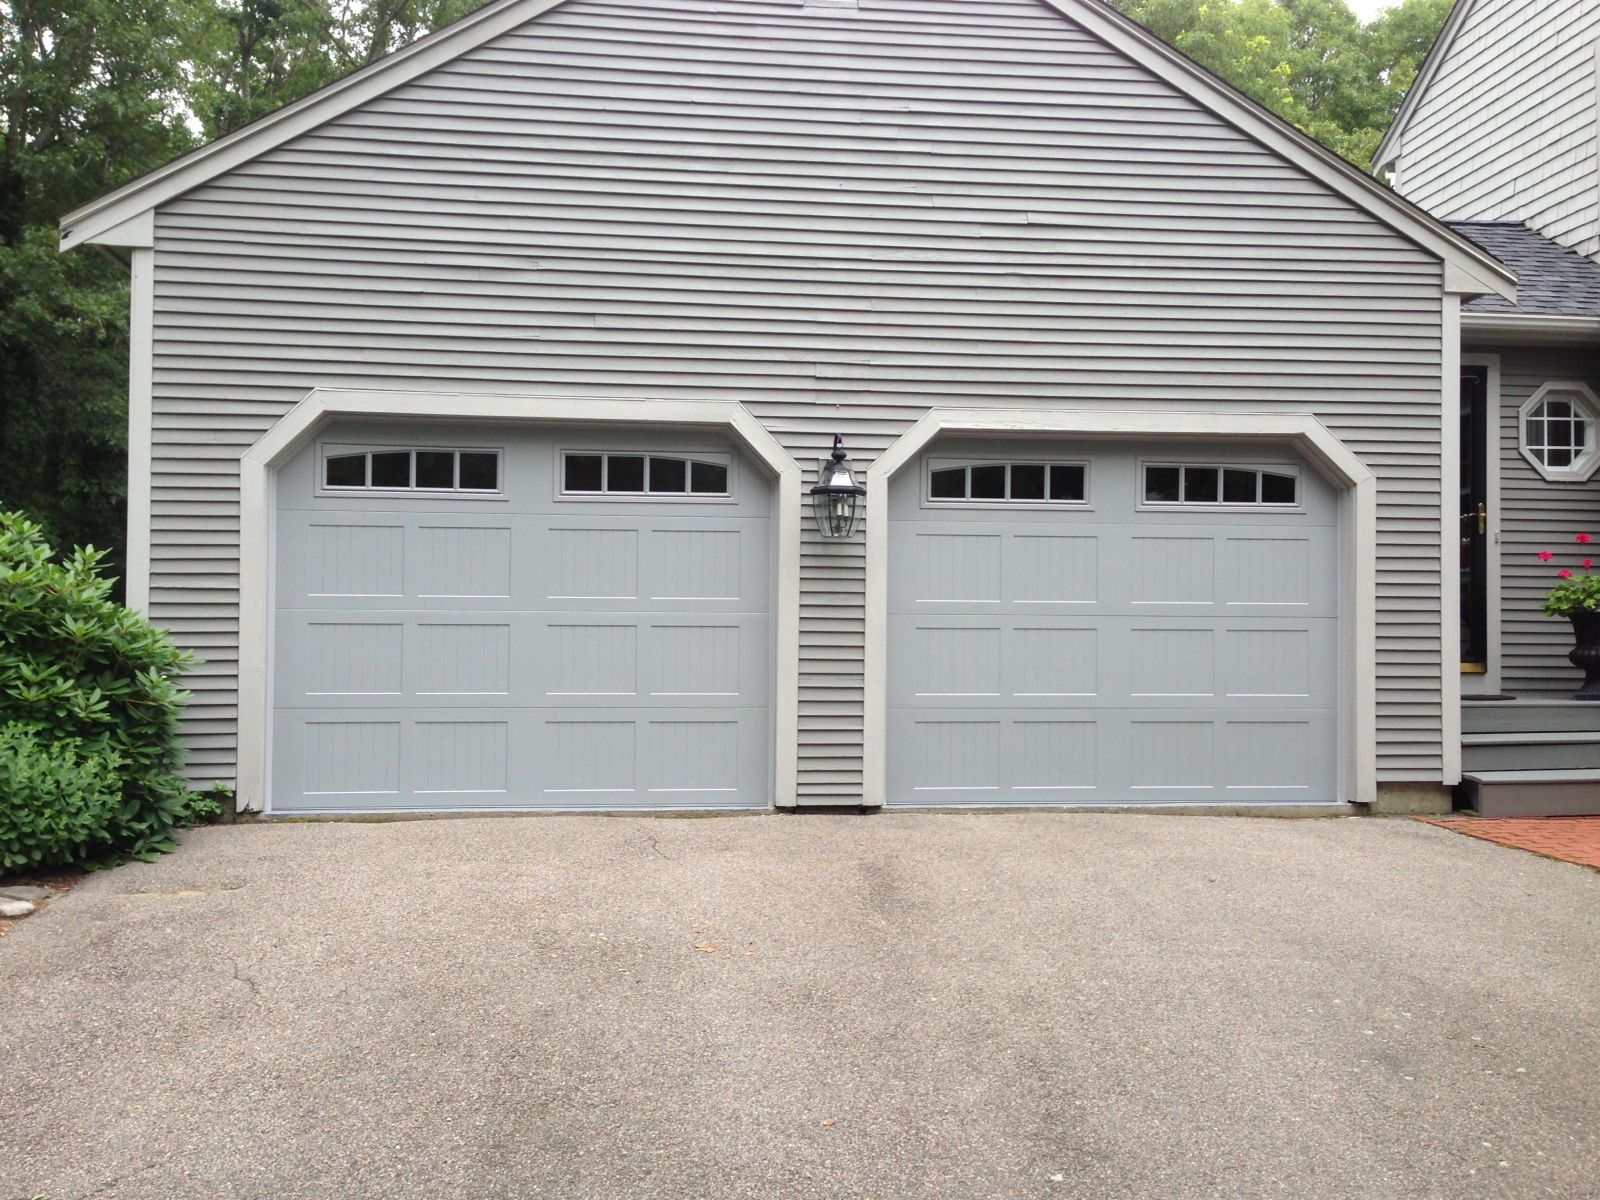 Chi overhead doors fiberglass garage door model 2751 in chi overhead doors fiberglass garage door model 2751 in woodtone oak with optional obscure glass chiohd fiberglass garage doors pinterest rubansaba